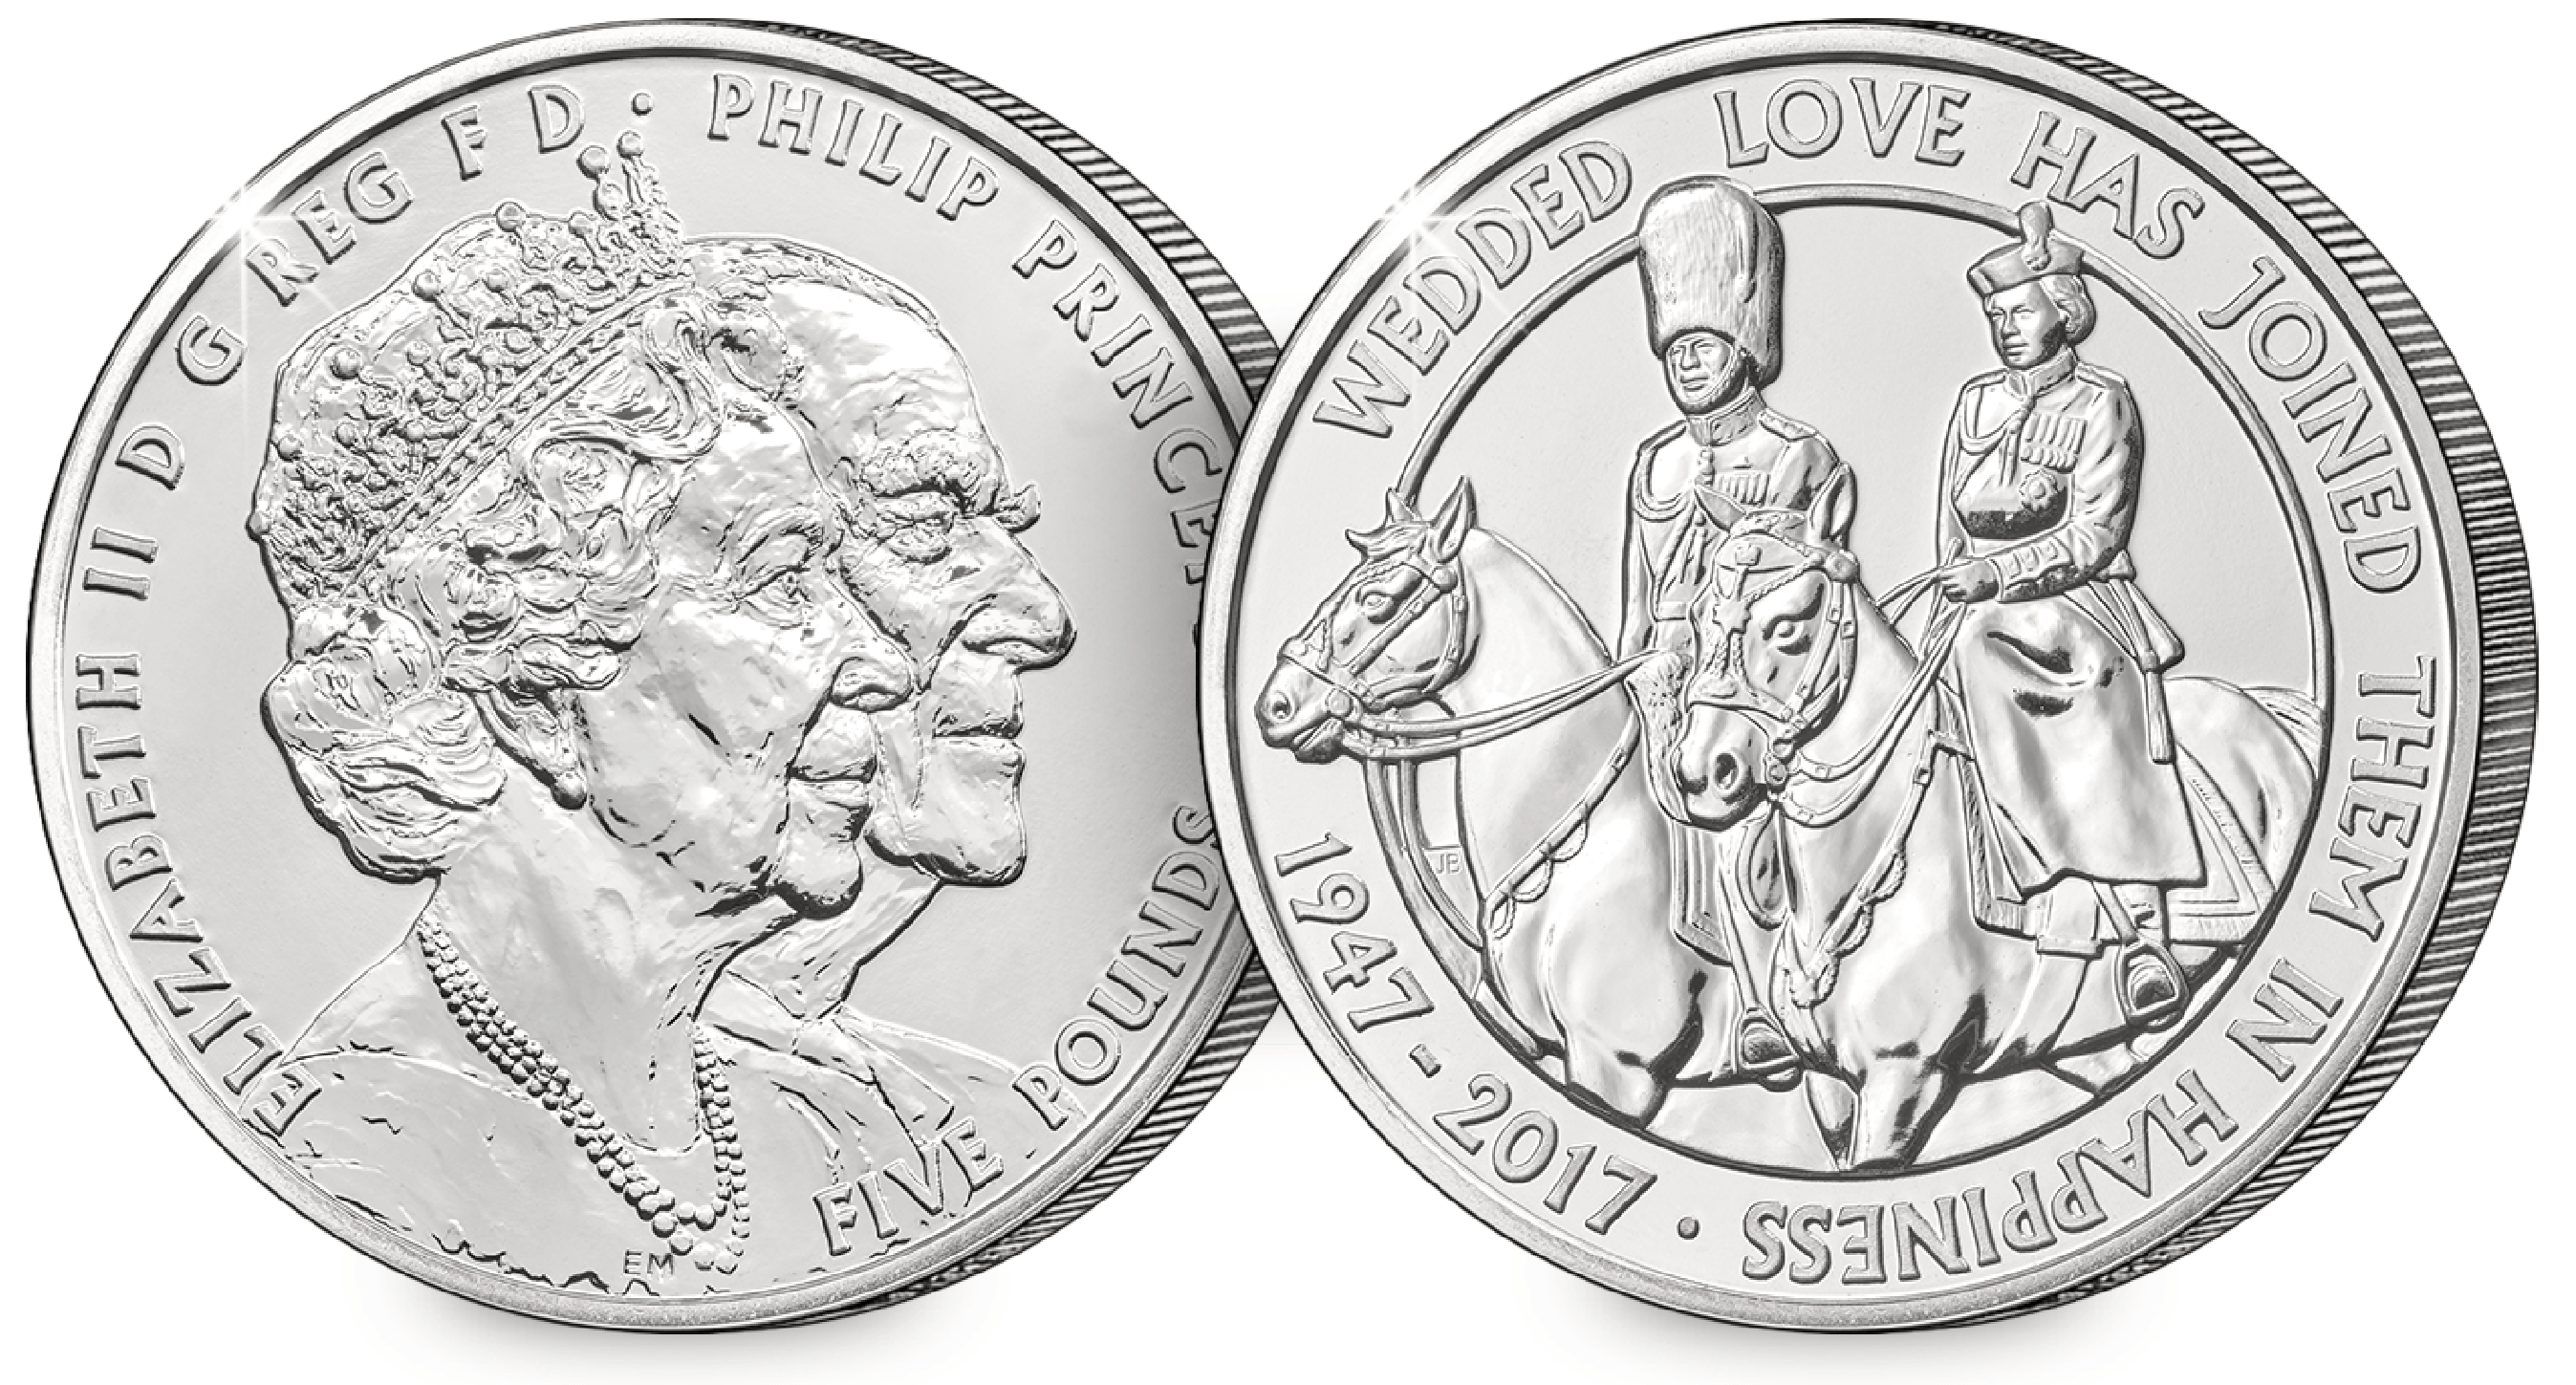 platinum wedding bu 5 pound obverse reverse123 - New UK £5 coin issued to celebrate Her Majesty's 70th Wedding Anniversary